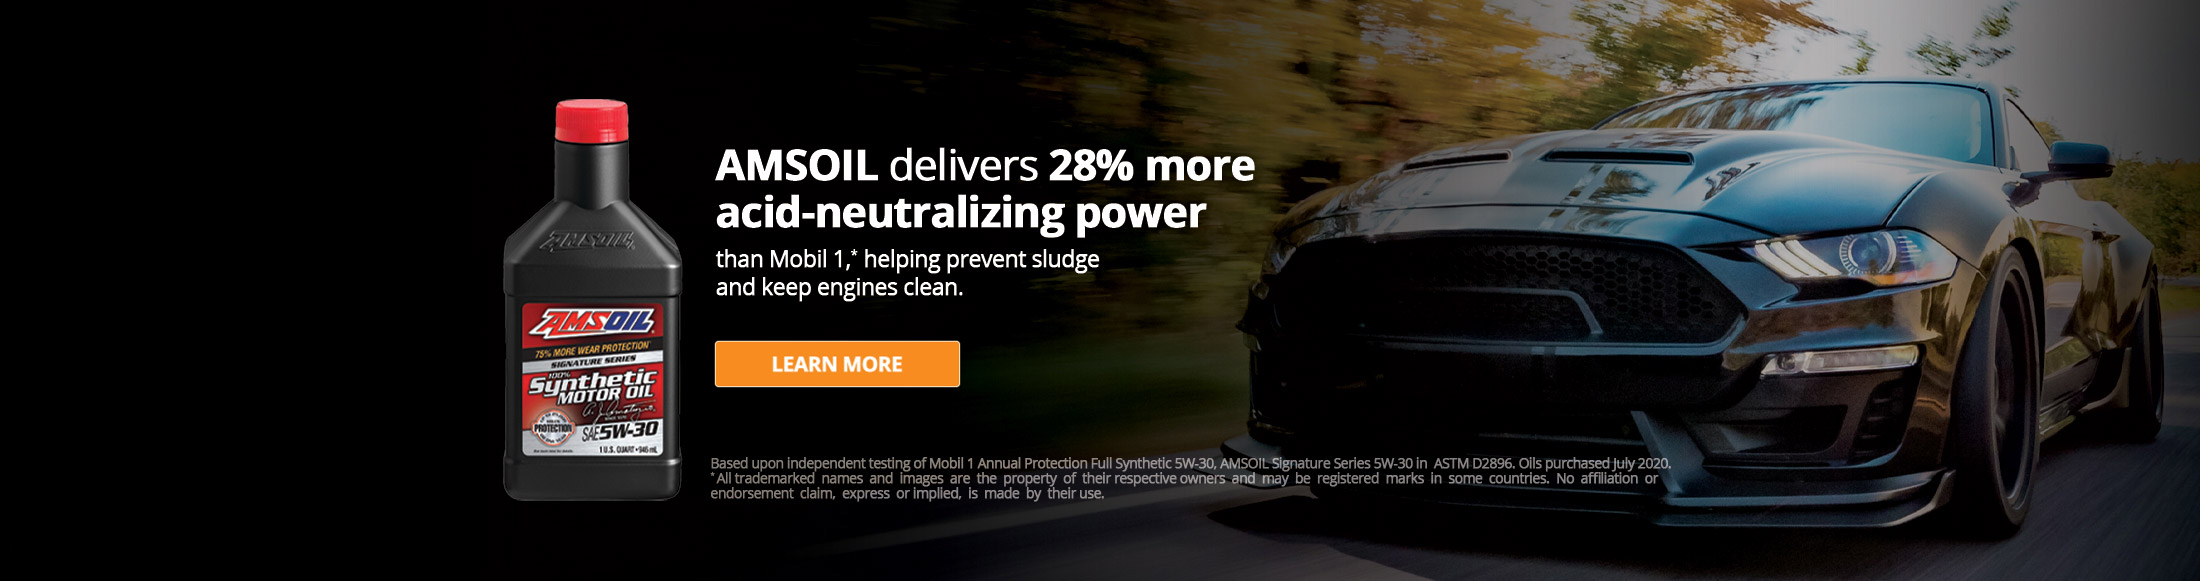 AMSOIL Delivers 28% more acid-neutralizing power